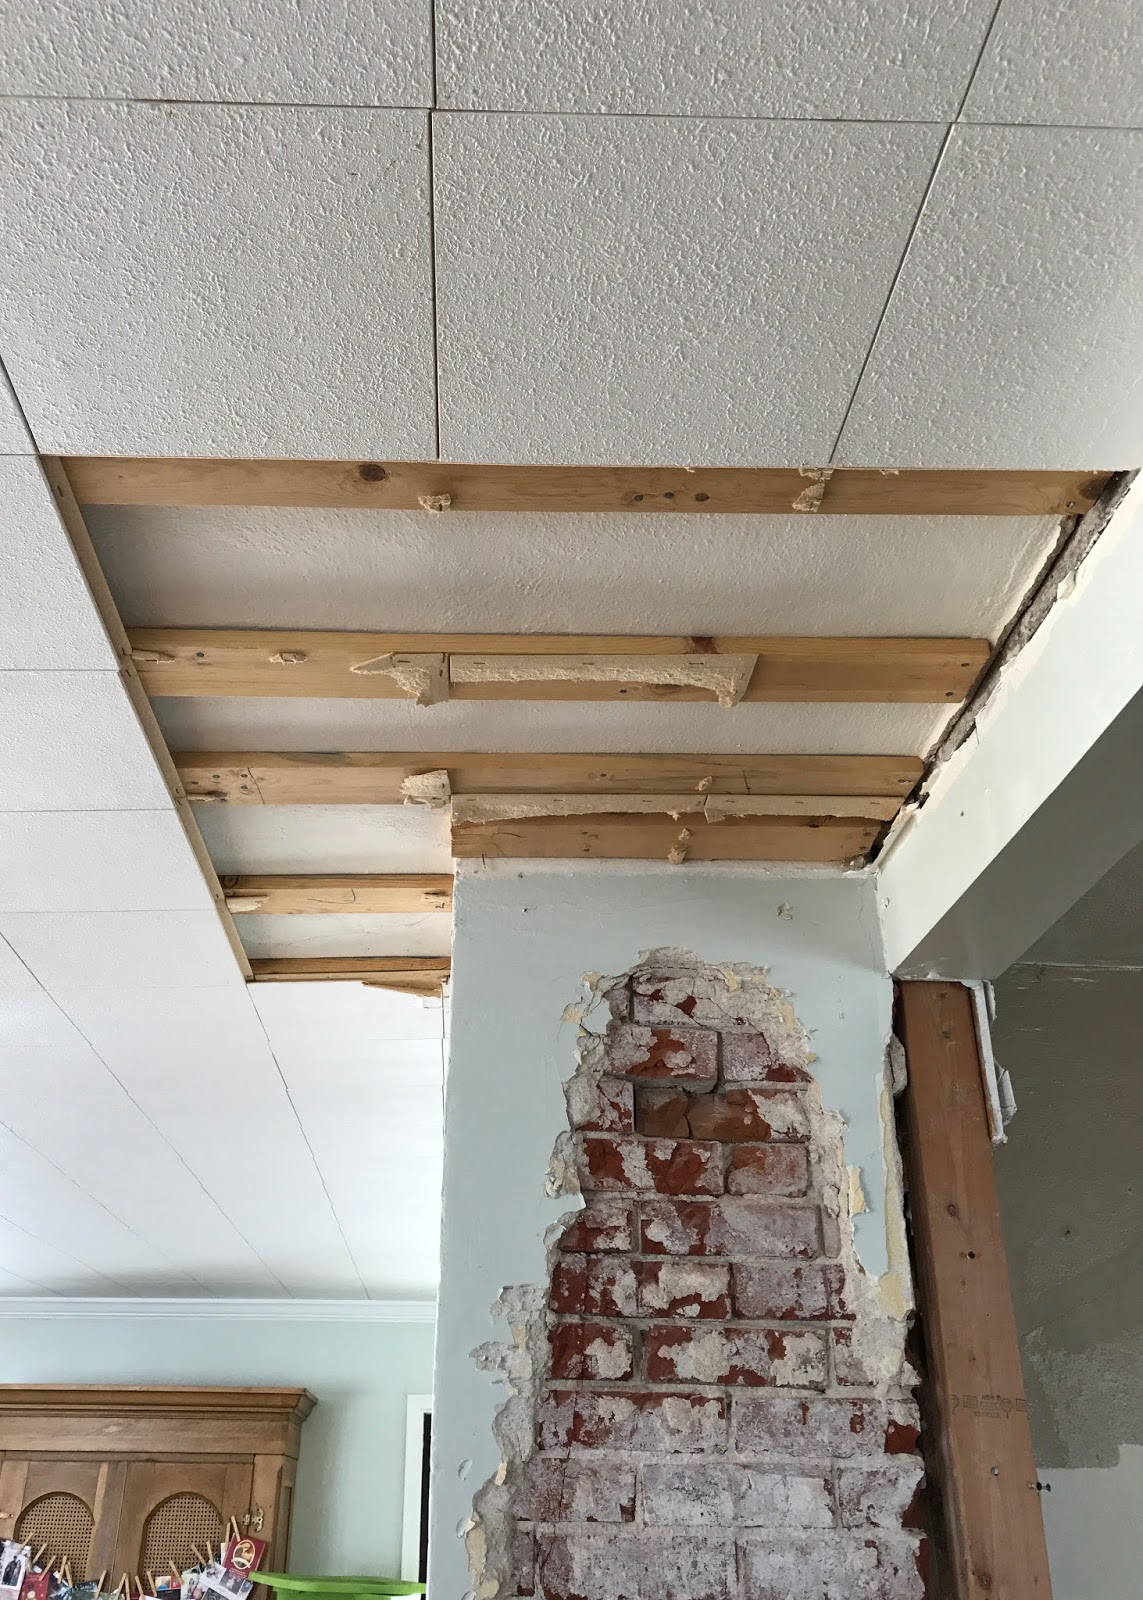 How To Remove Ceiling Tiles | Tile Design Ideas